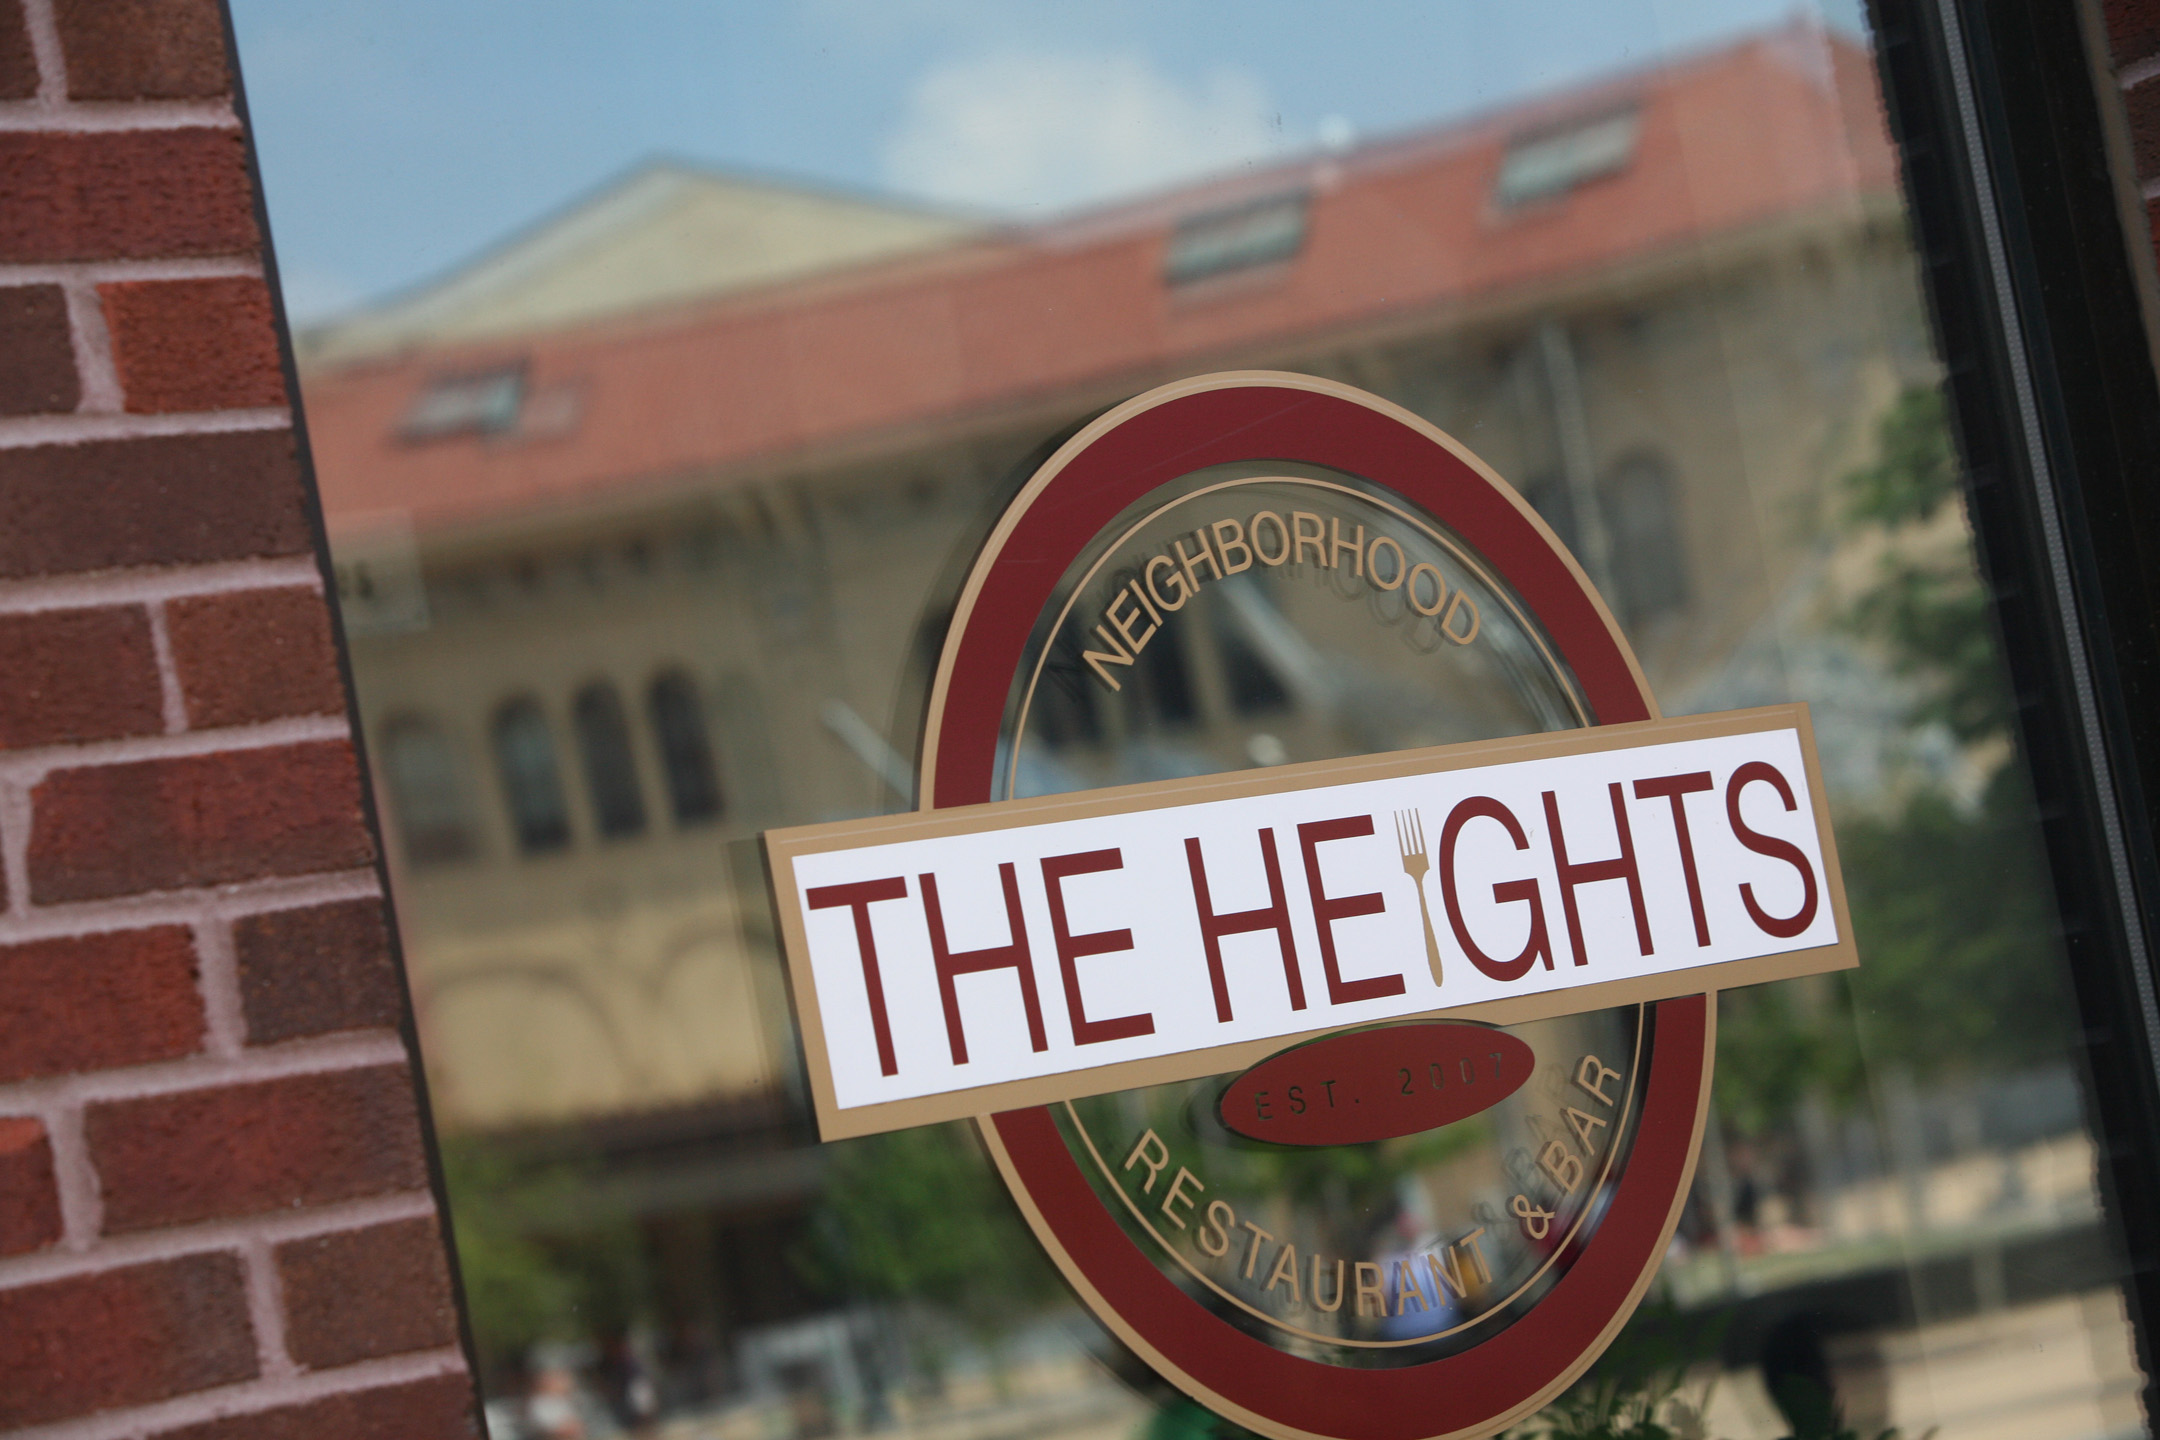 EatWell DC will sell The Heights in Columbia Heights to D.C. Food Group. (Photo: Eat Real)